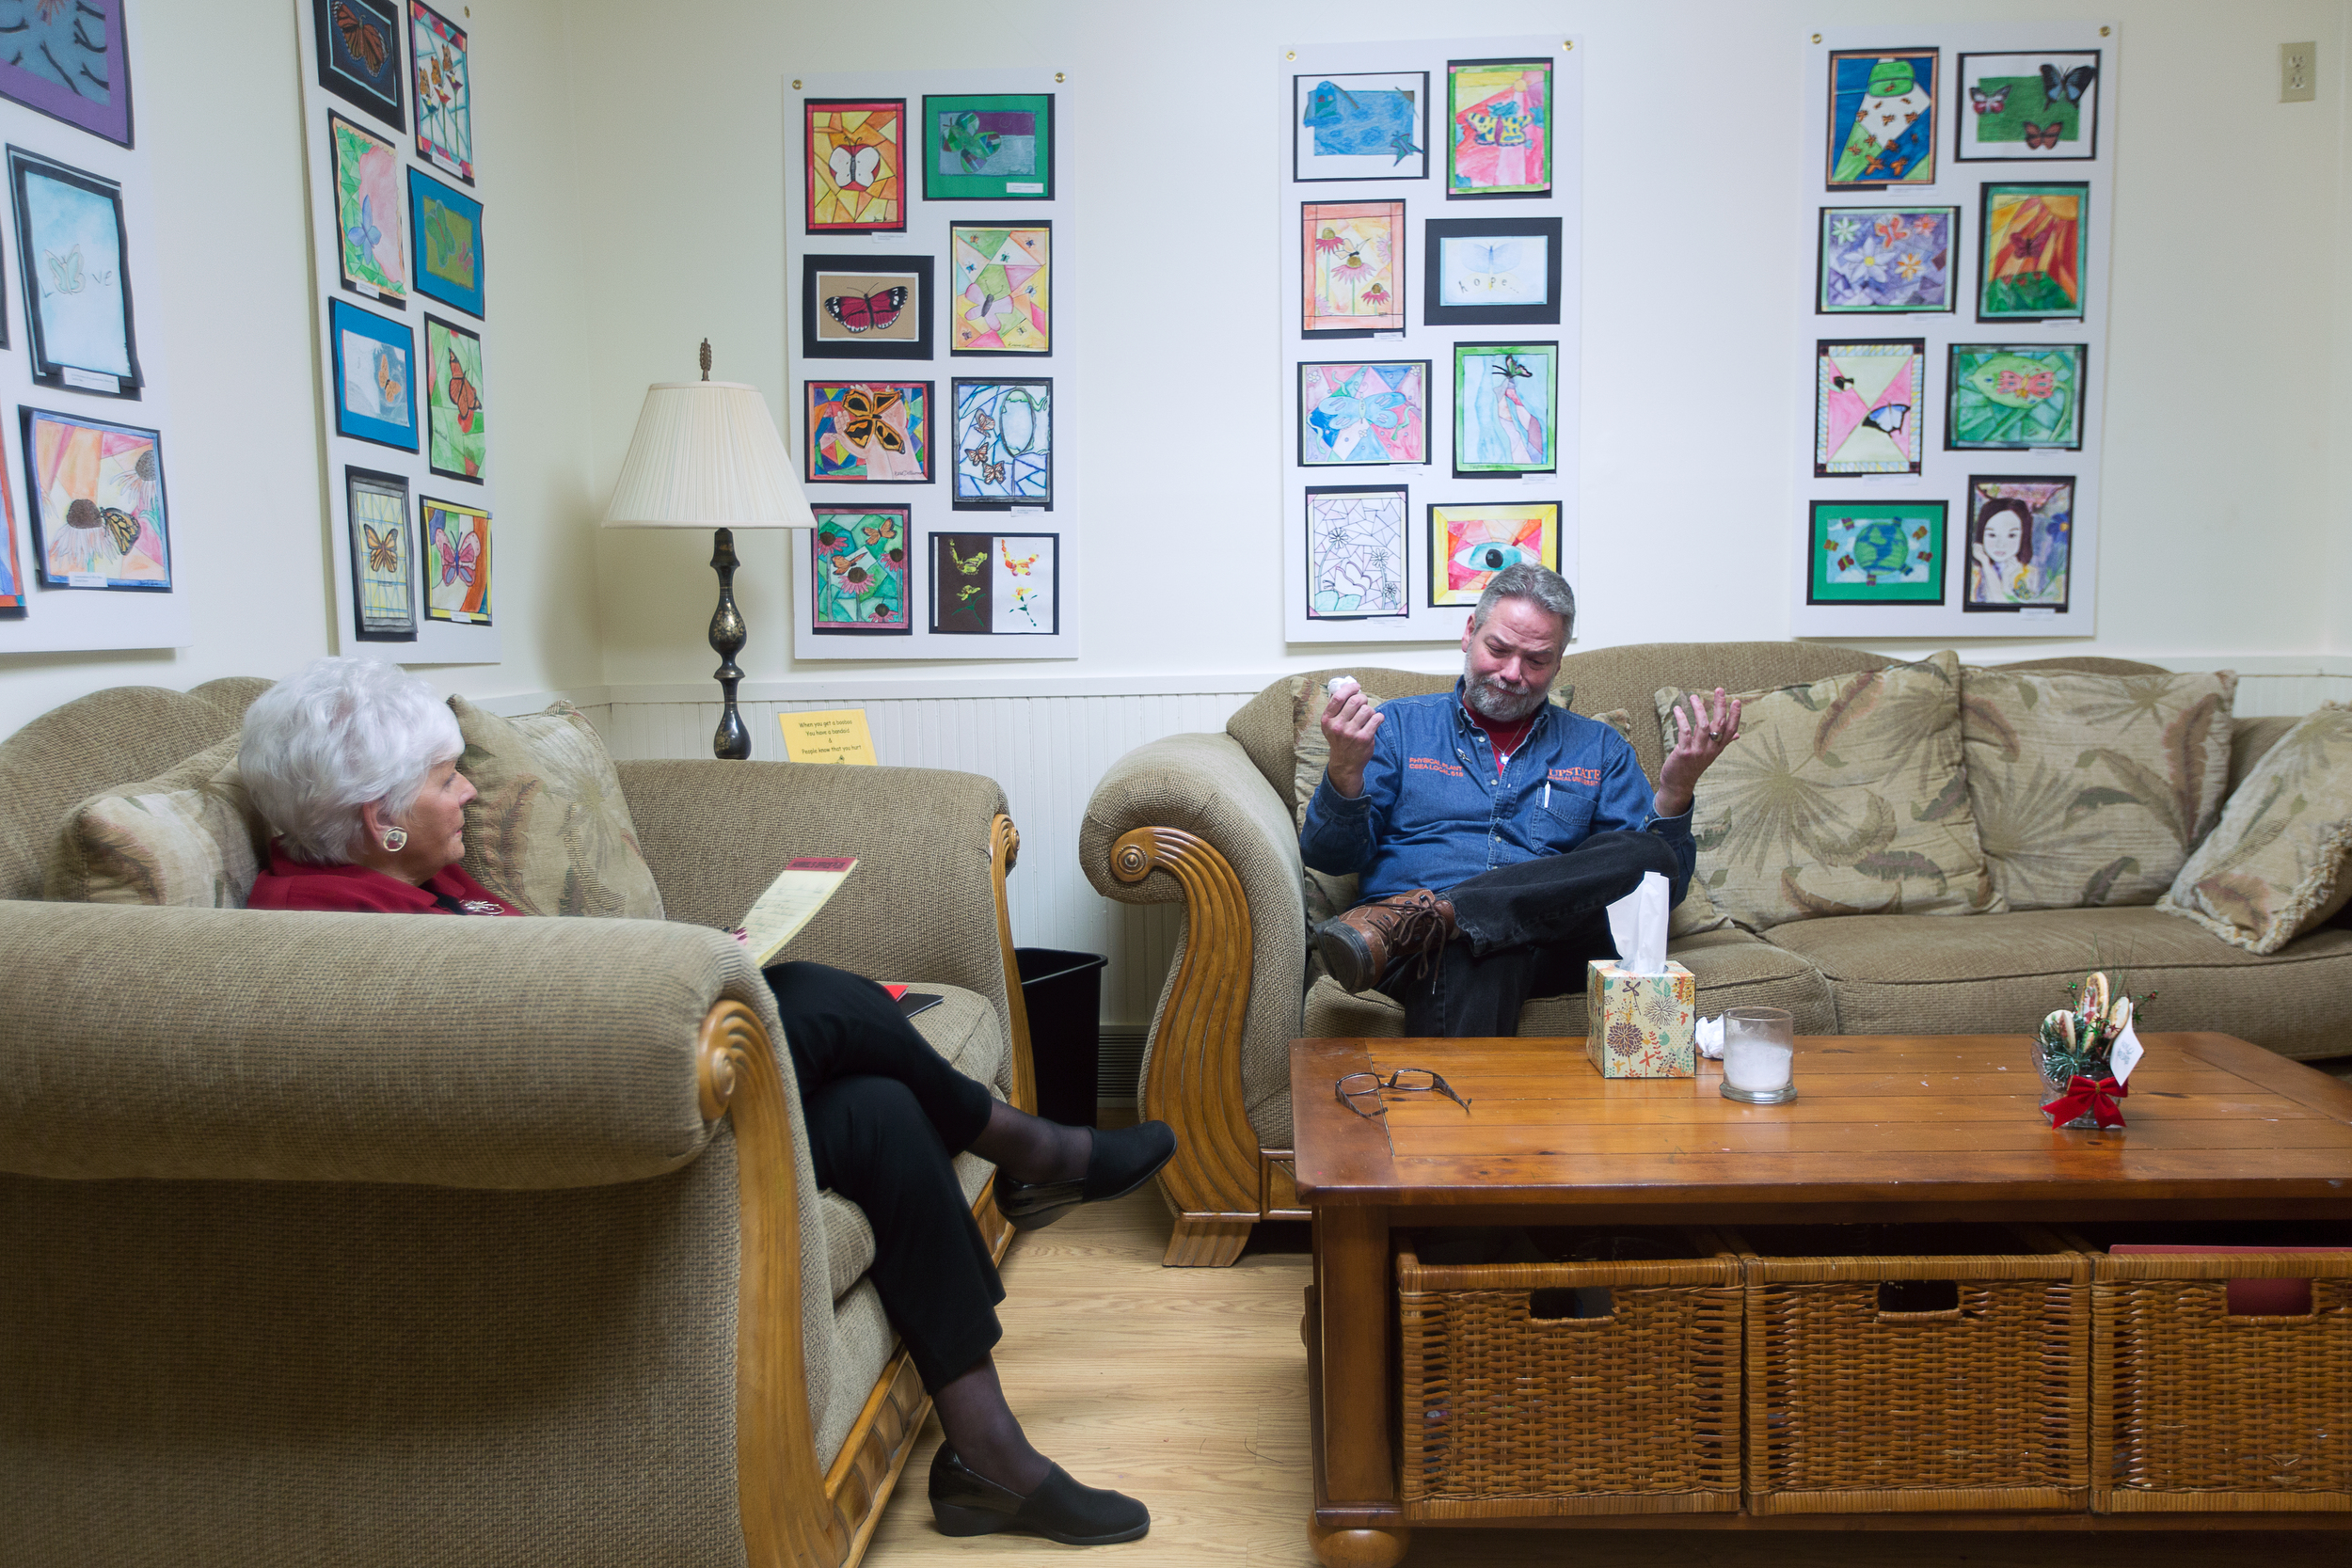 """Ron Doughty speaks with Christine Beattie, a one on one and support group counselor at Hope for Bereaved in Syracuse, N.Y. on Dec. 10, 2015. Christine lost her son to suicide over 30 years ago. """"It helps speaking with someone who has experienced the loss of a child,"""" said Ron."""